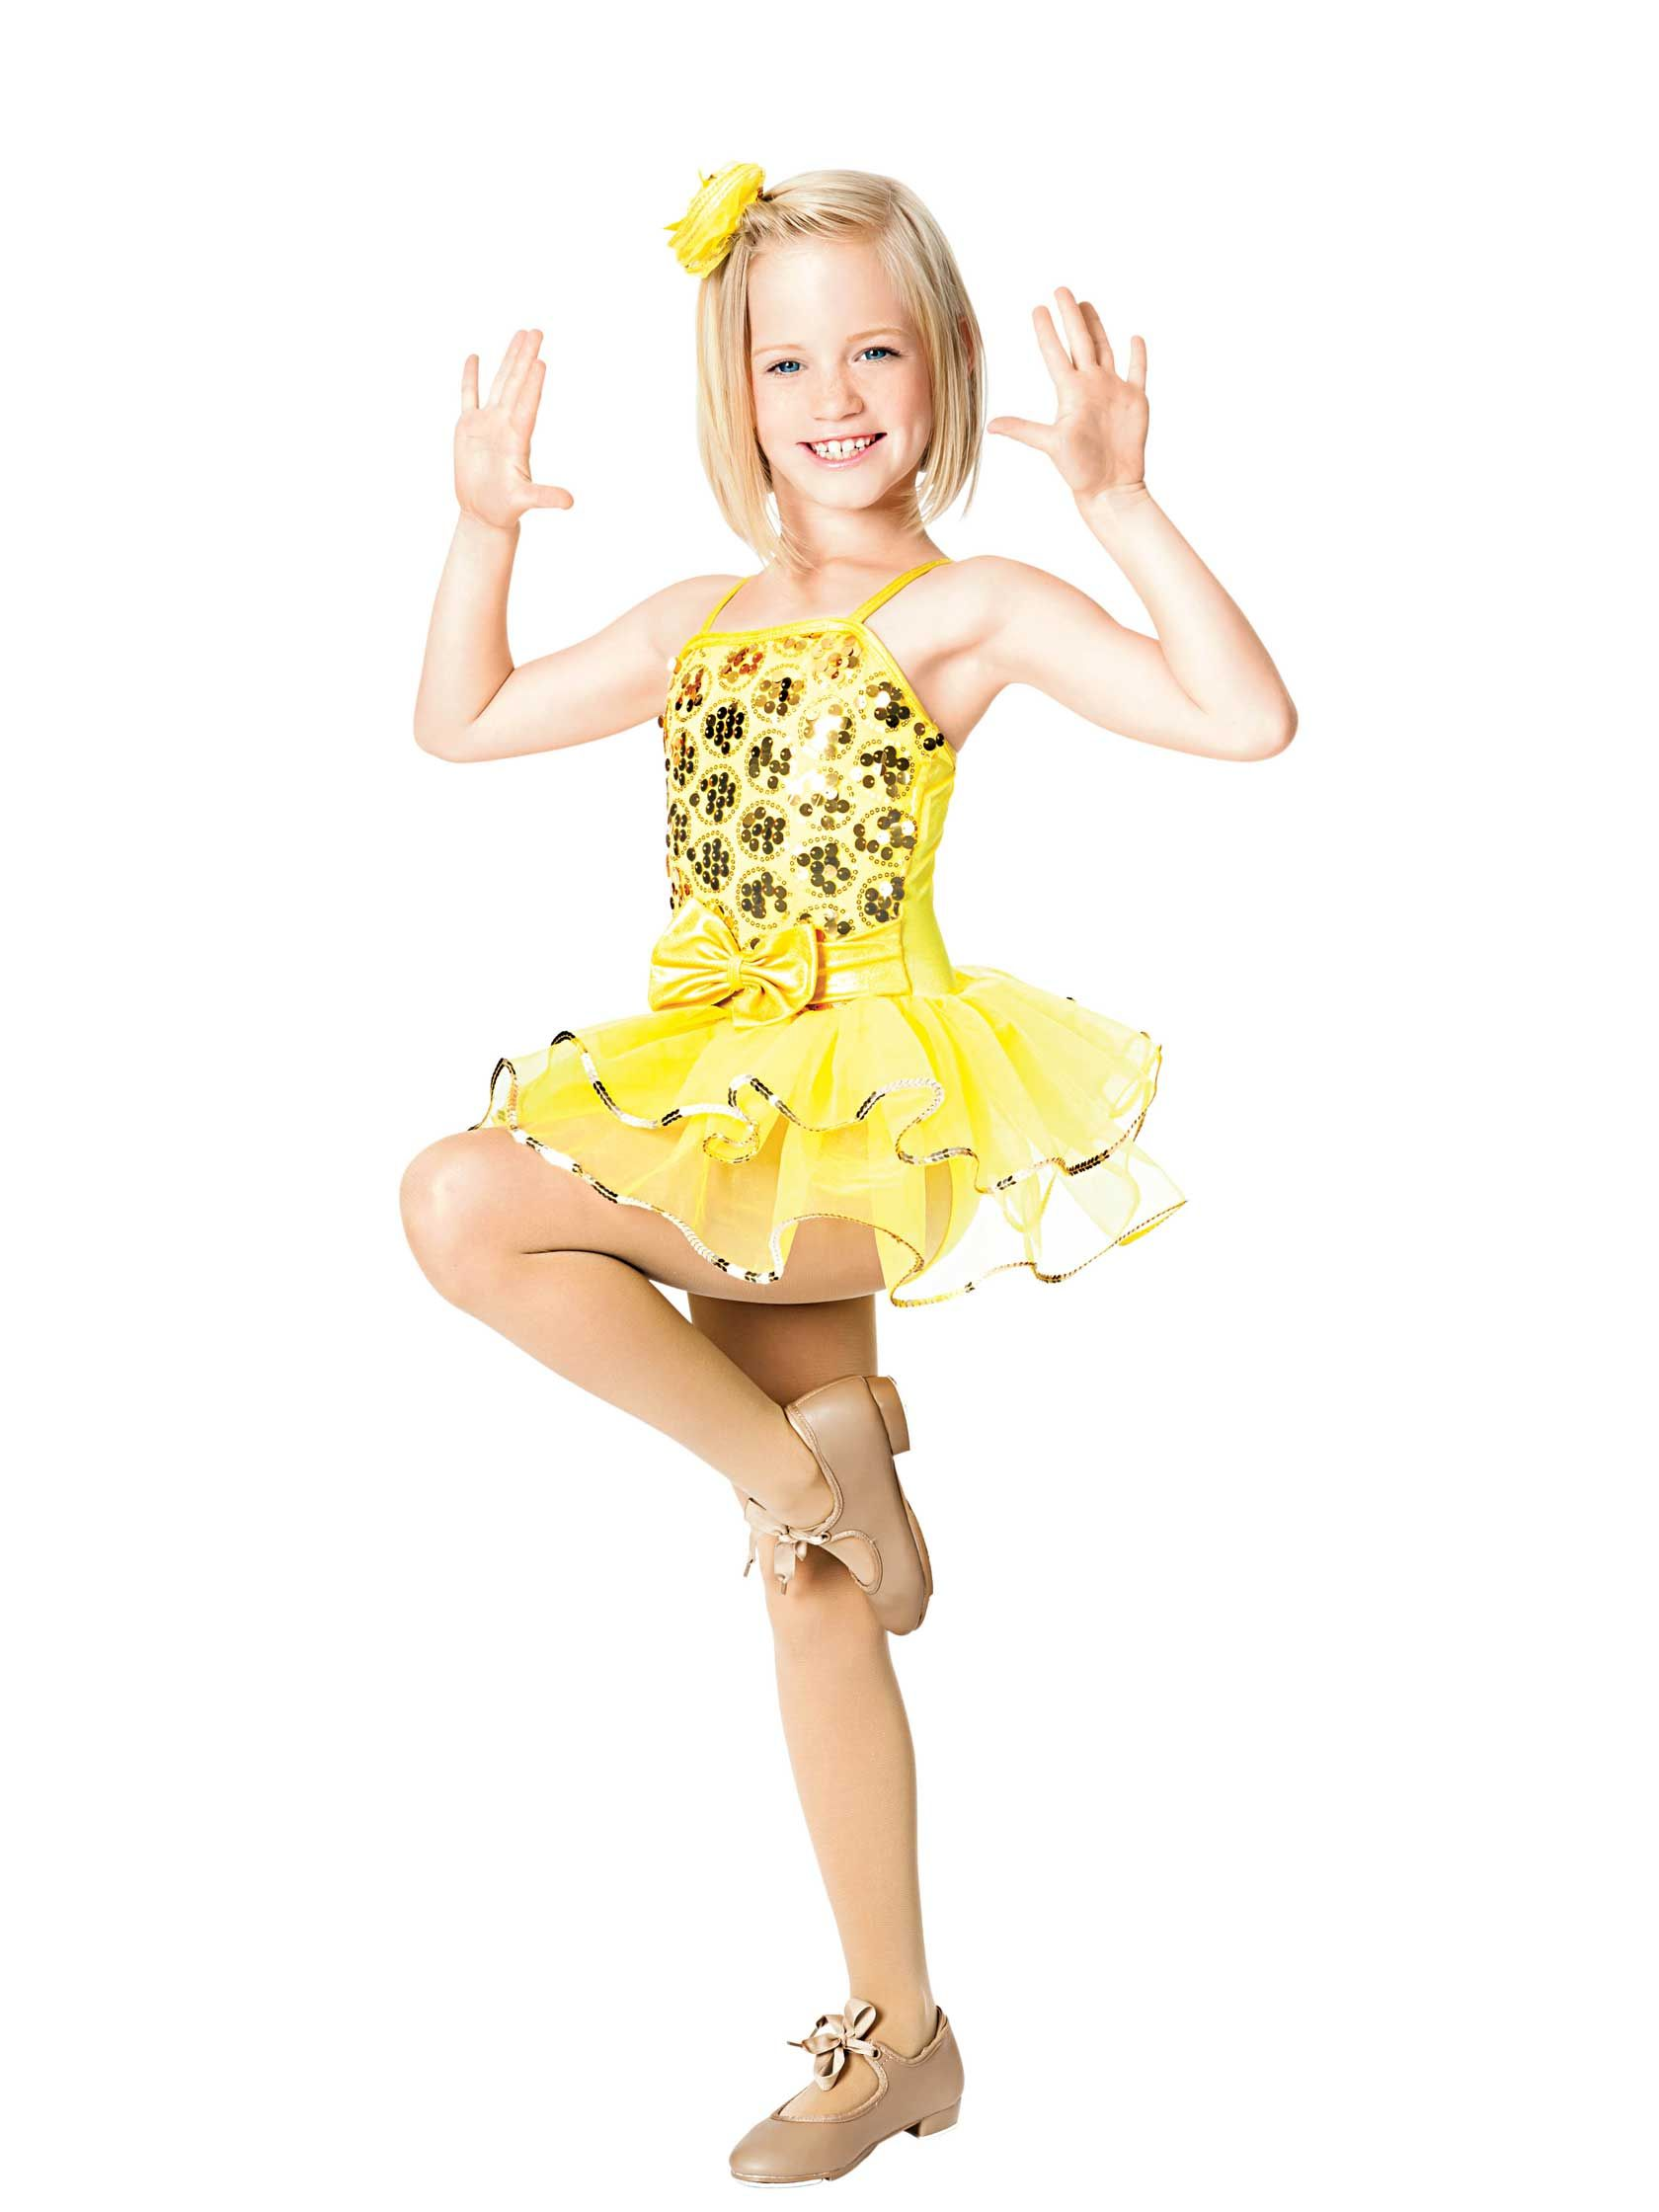 Pin By Debbie Smith On Bathroom Ideas In 2019: Pin By Debbie Murphy On Dance Poses Tap